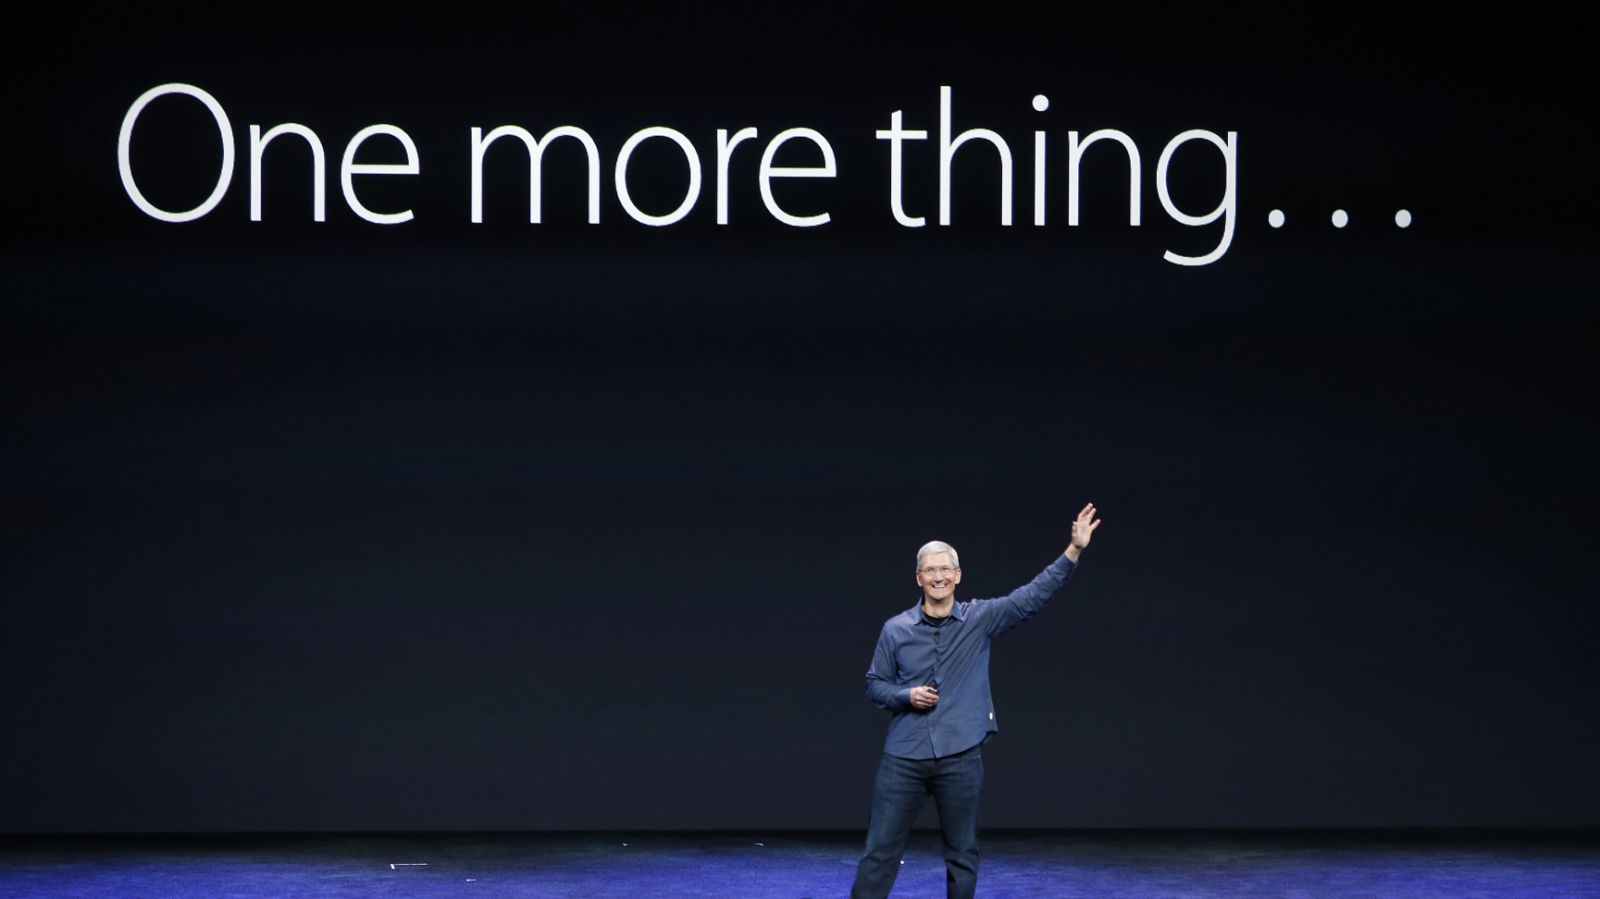 Apple CEO Tim Cook speaks on stage during an Apple event at the Flint Center in Cupertino, California, September 9, 2014.